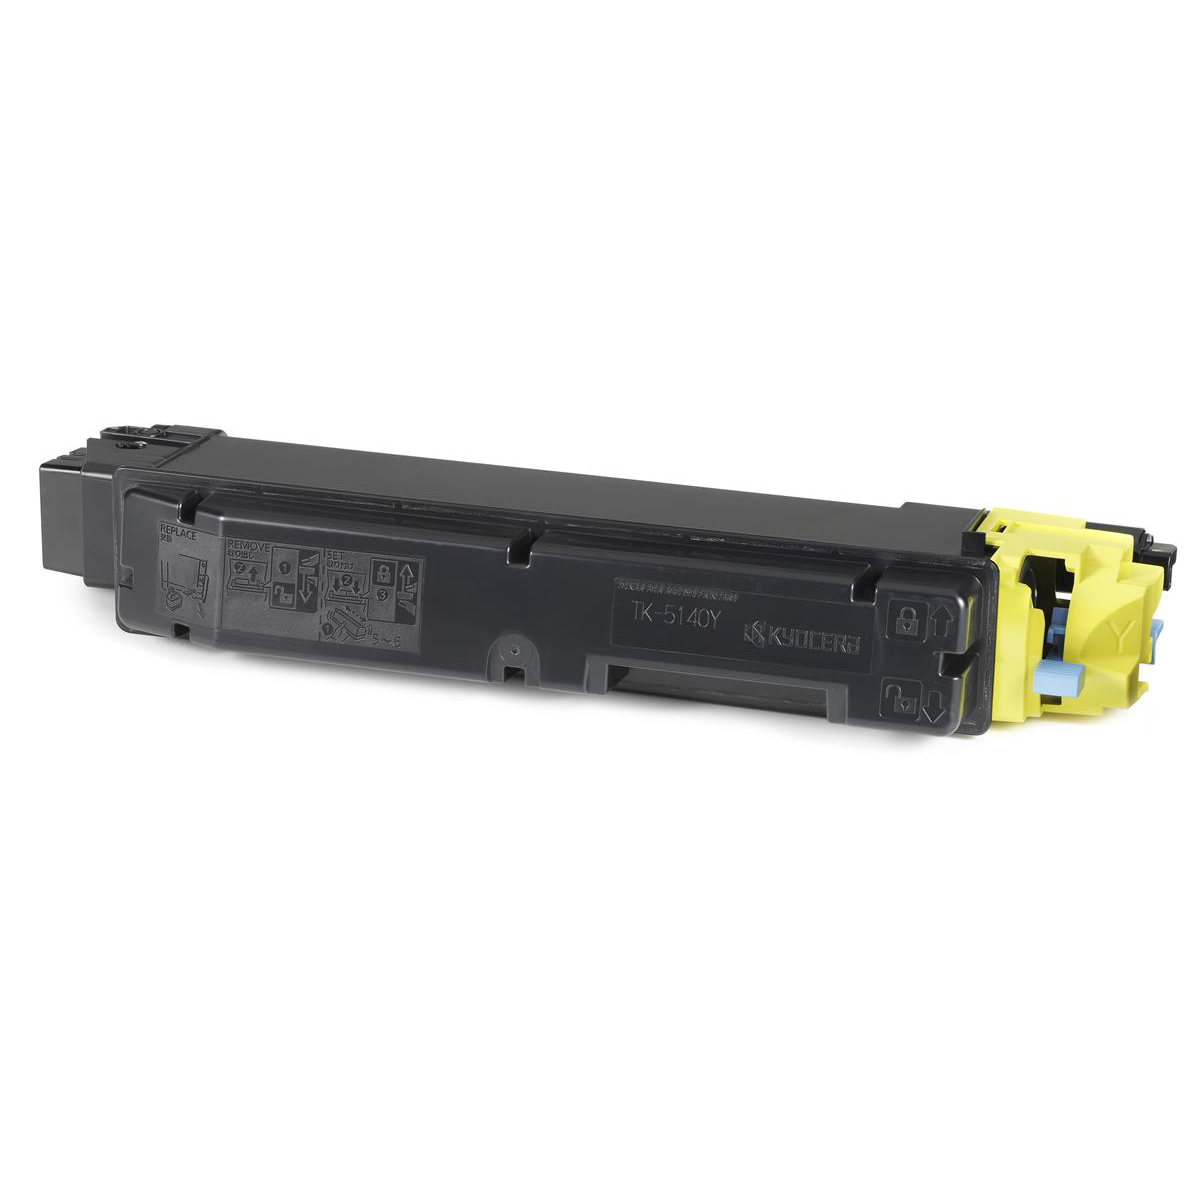 Kyocera TK-5140Y Laser Toner Cartridge Page Life 5000pp Yellow Ref 1T02NRANL0 *3to5 Day Leadtime*